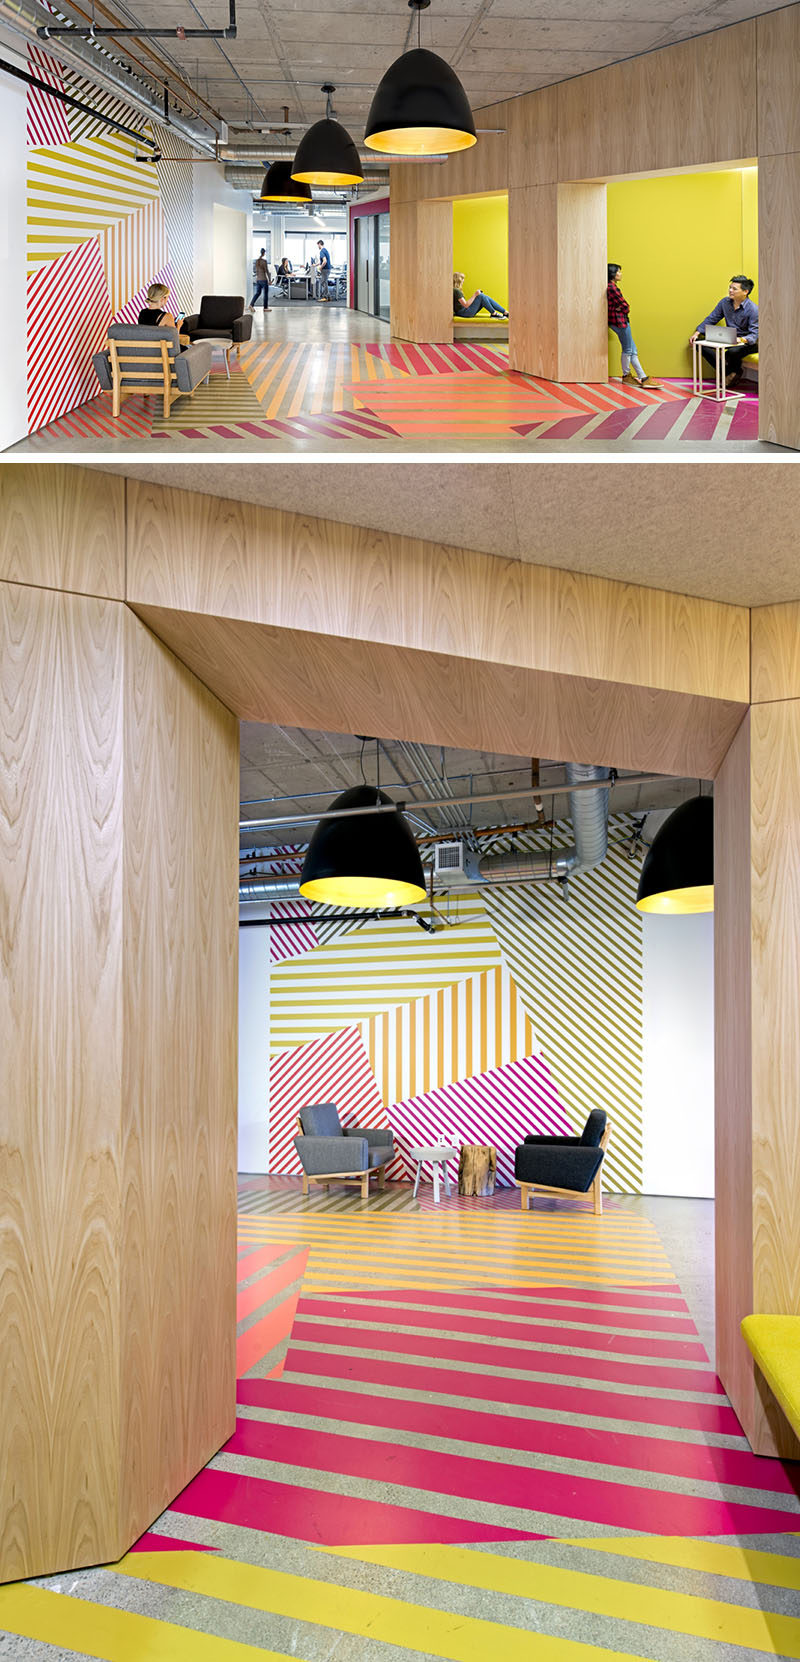 Interior Design Idea - This office design has a colorful geometric pattern that flows from the wall to the floor, and is inspired by the colors of the tulip fields in the Netherlands.